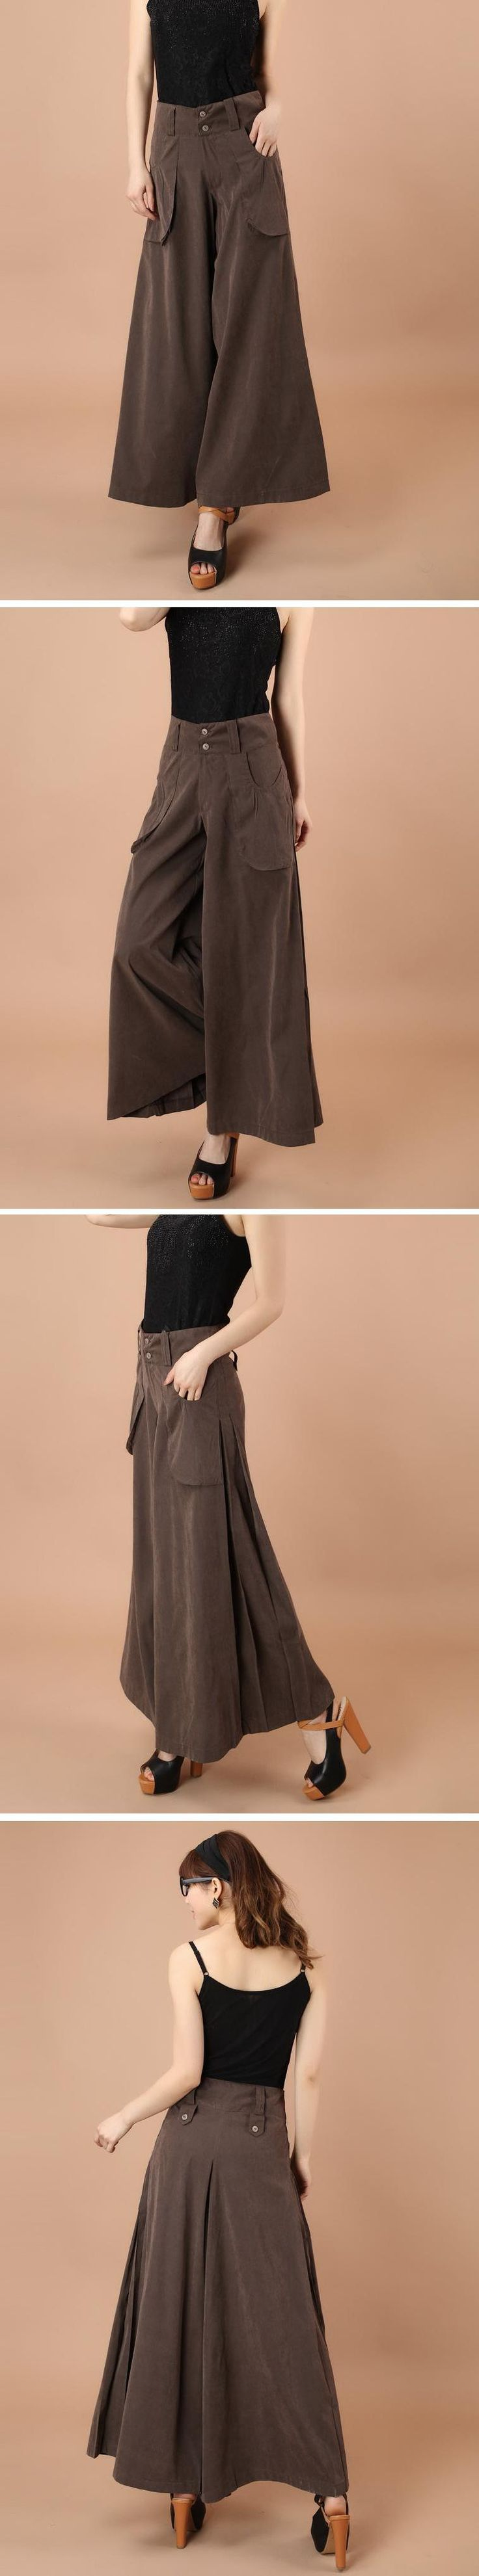 2013 spring and summer Career casual loose pants plus size trousers wide leg pants Palazzo high waist pant fashion culottes-inPants & Capris from Apparel & Accessories on Aliexpress.com | Alibaba Group